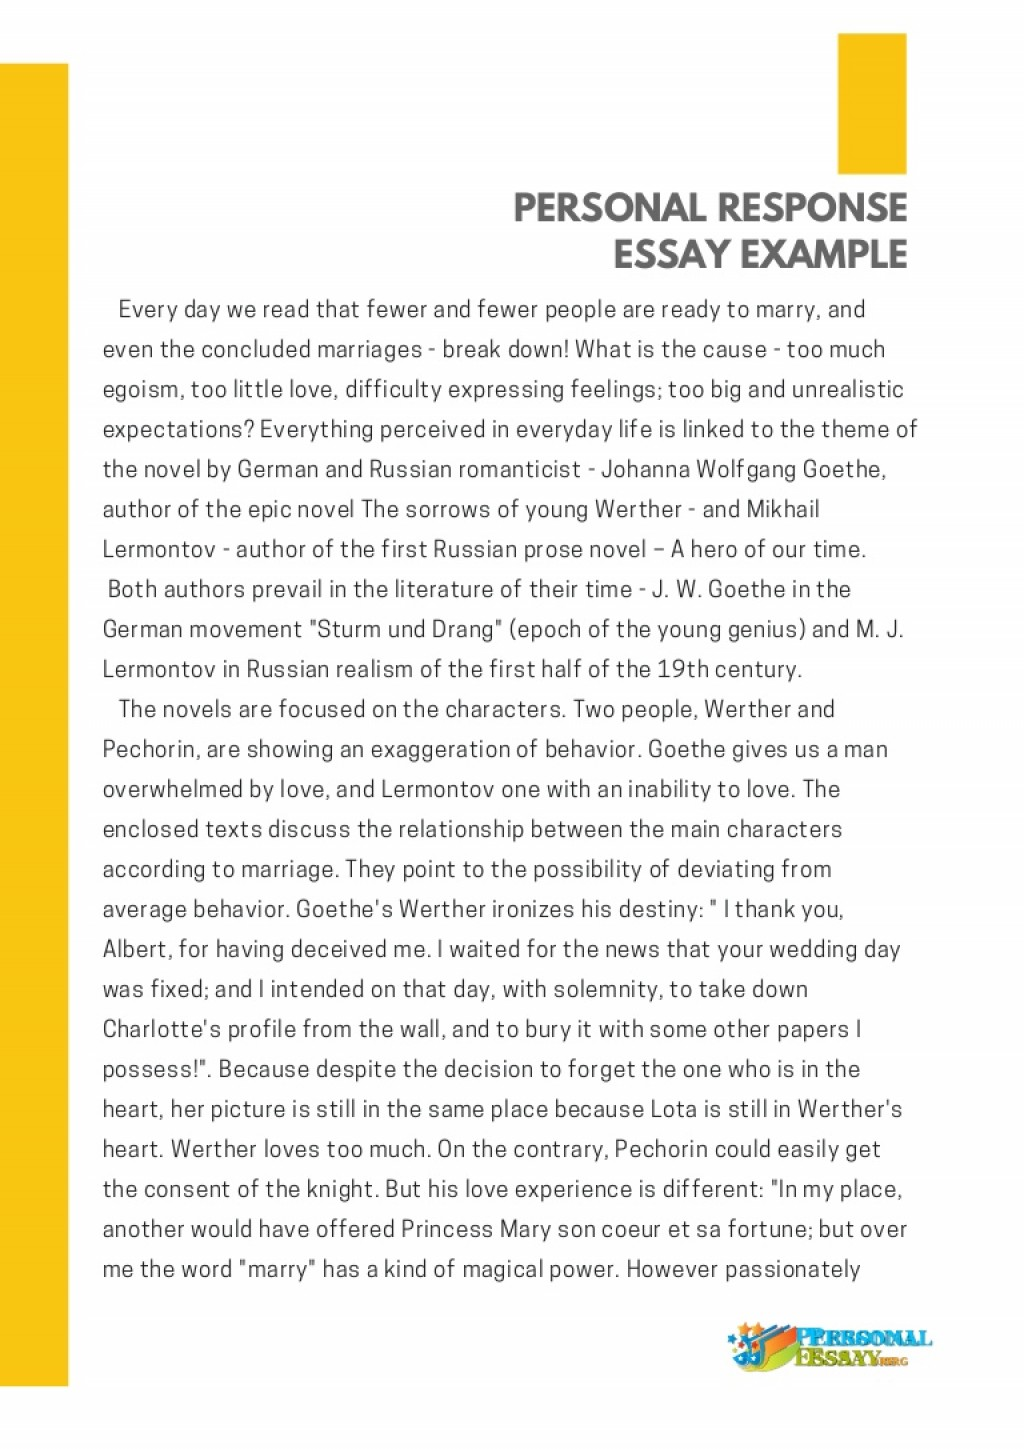 018 Personal Response Essay Example Thumbnail Awful Text Analysis Extended Year 12 Large